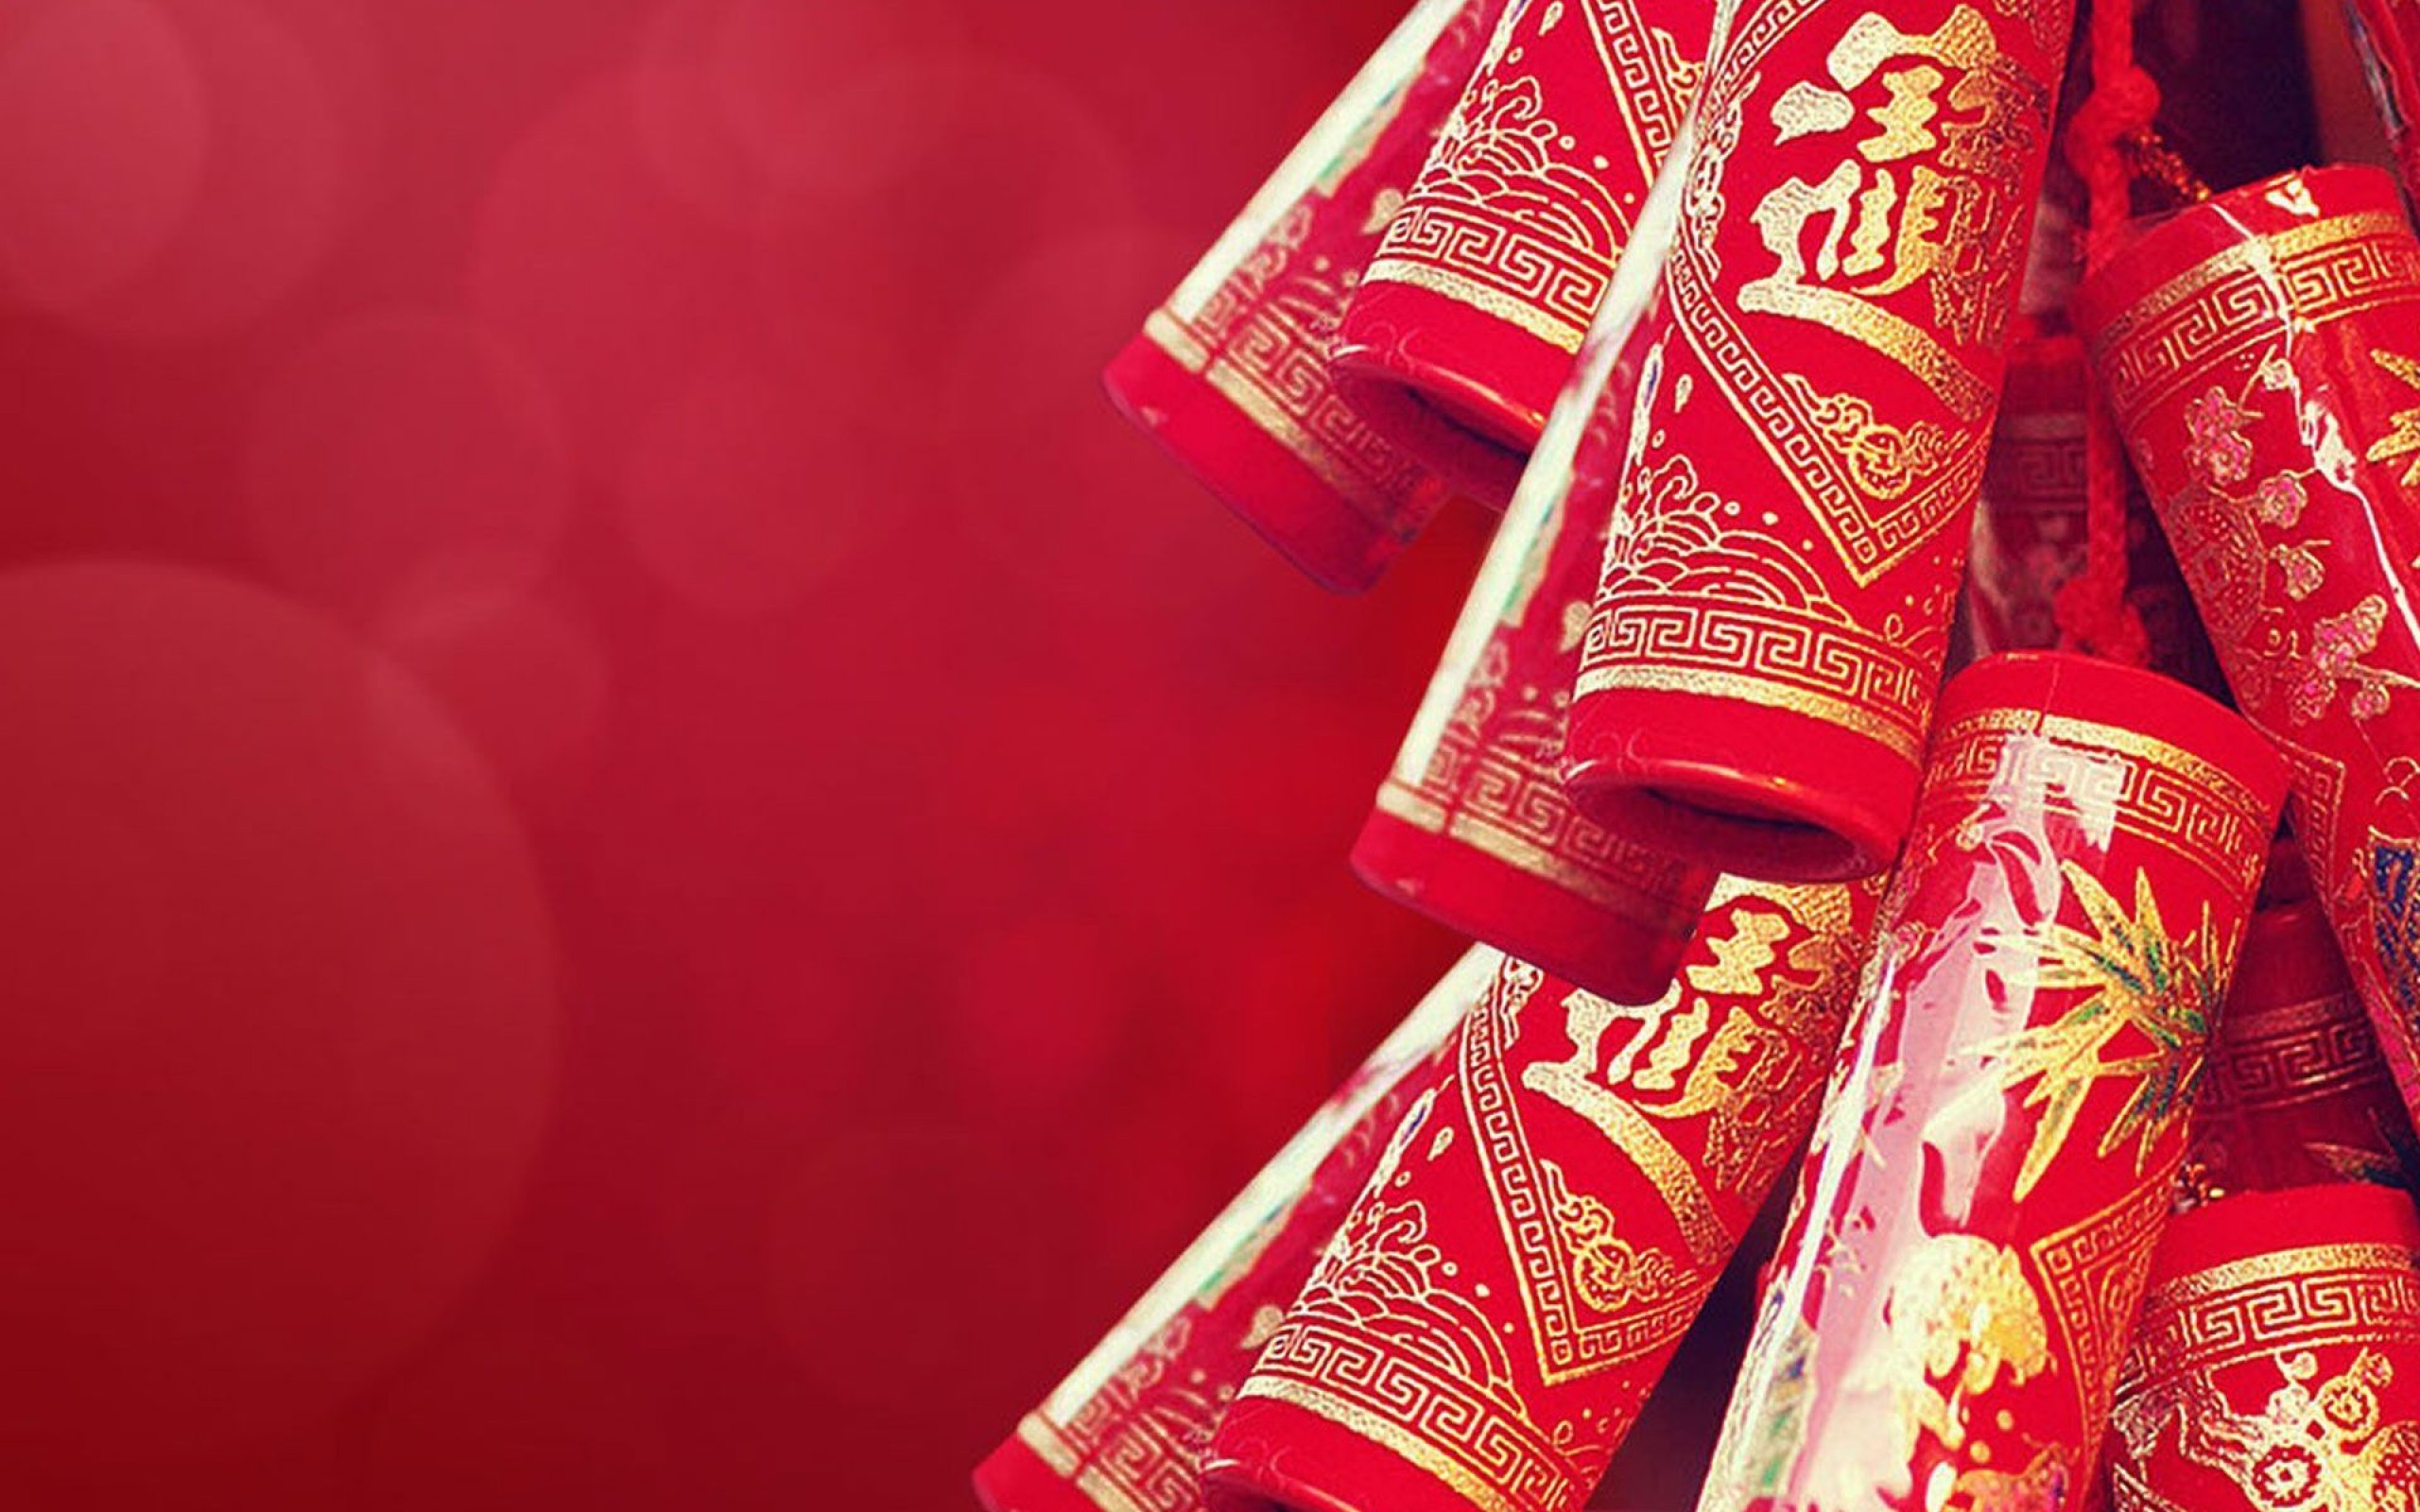 Chinese New Year Wallpaper and Card Background